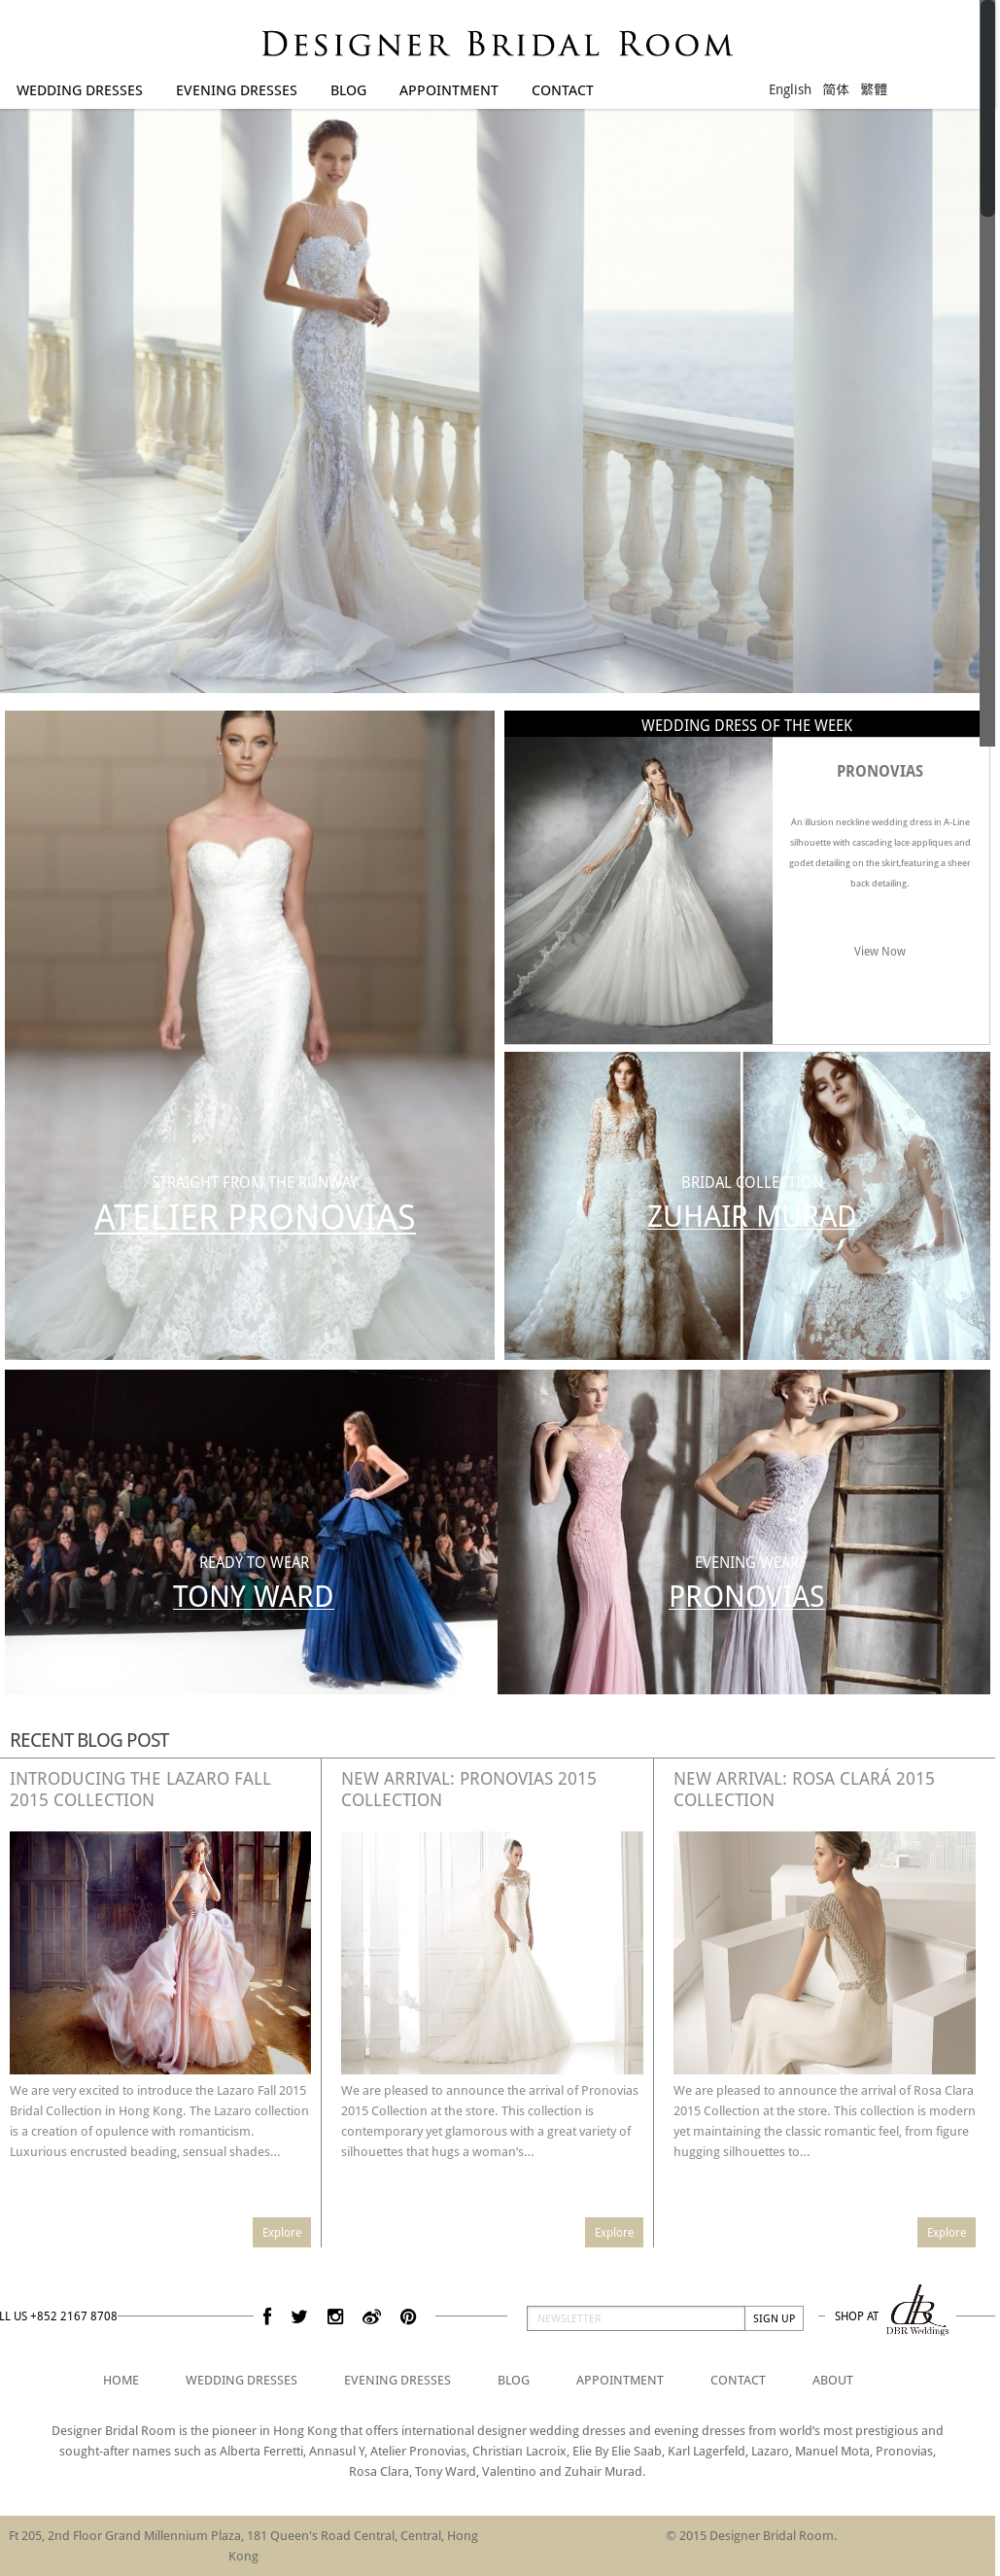 Designer Bridal Room Hong Kong Competitors Revenue and Employees